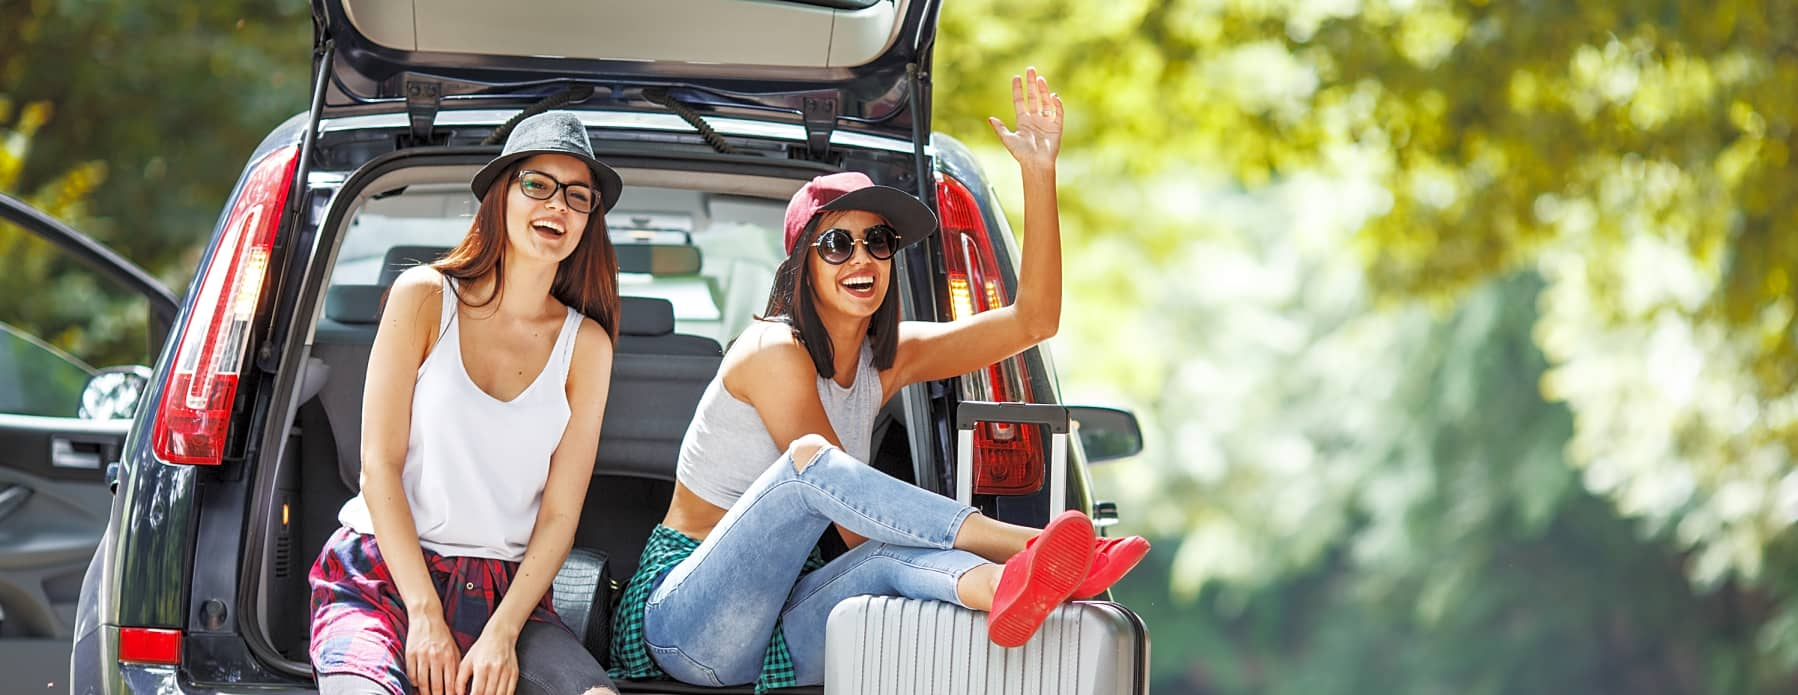 Rent a Car and Private Driver for a Day in Bali gallery